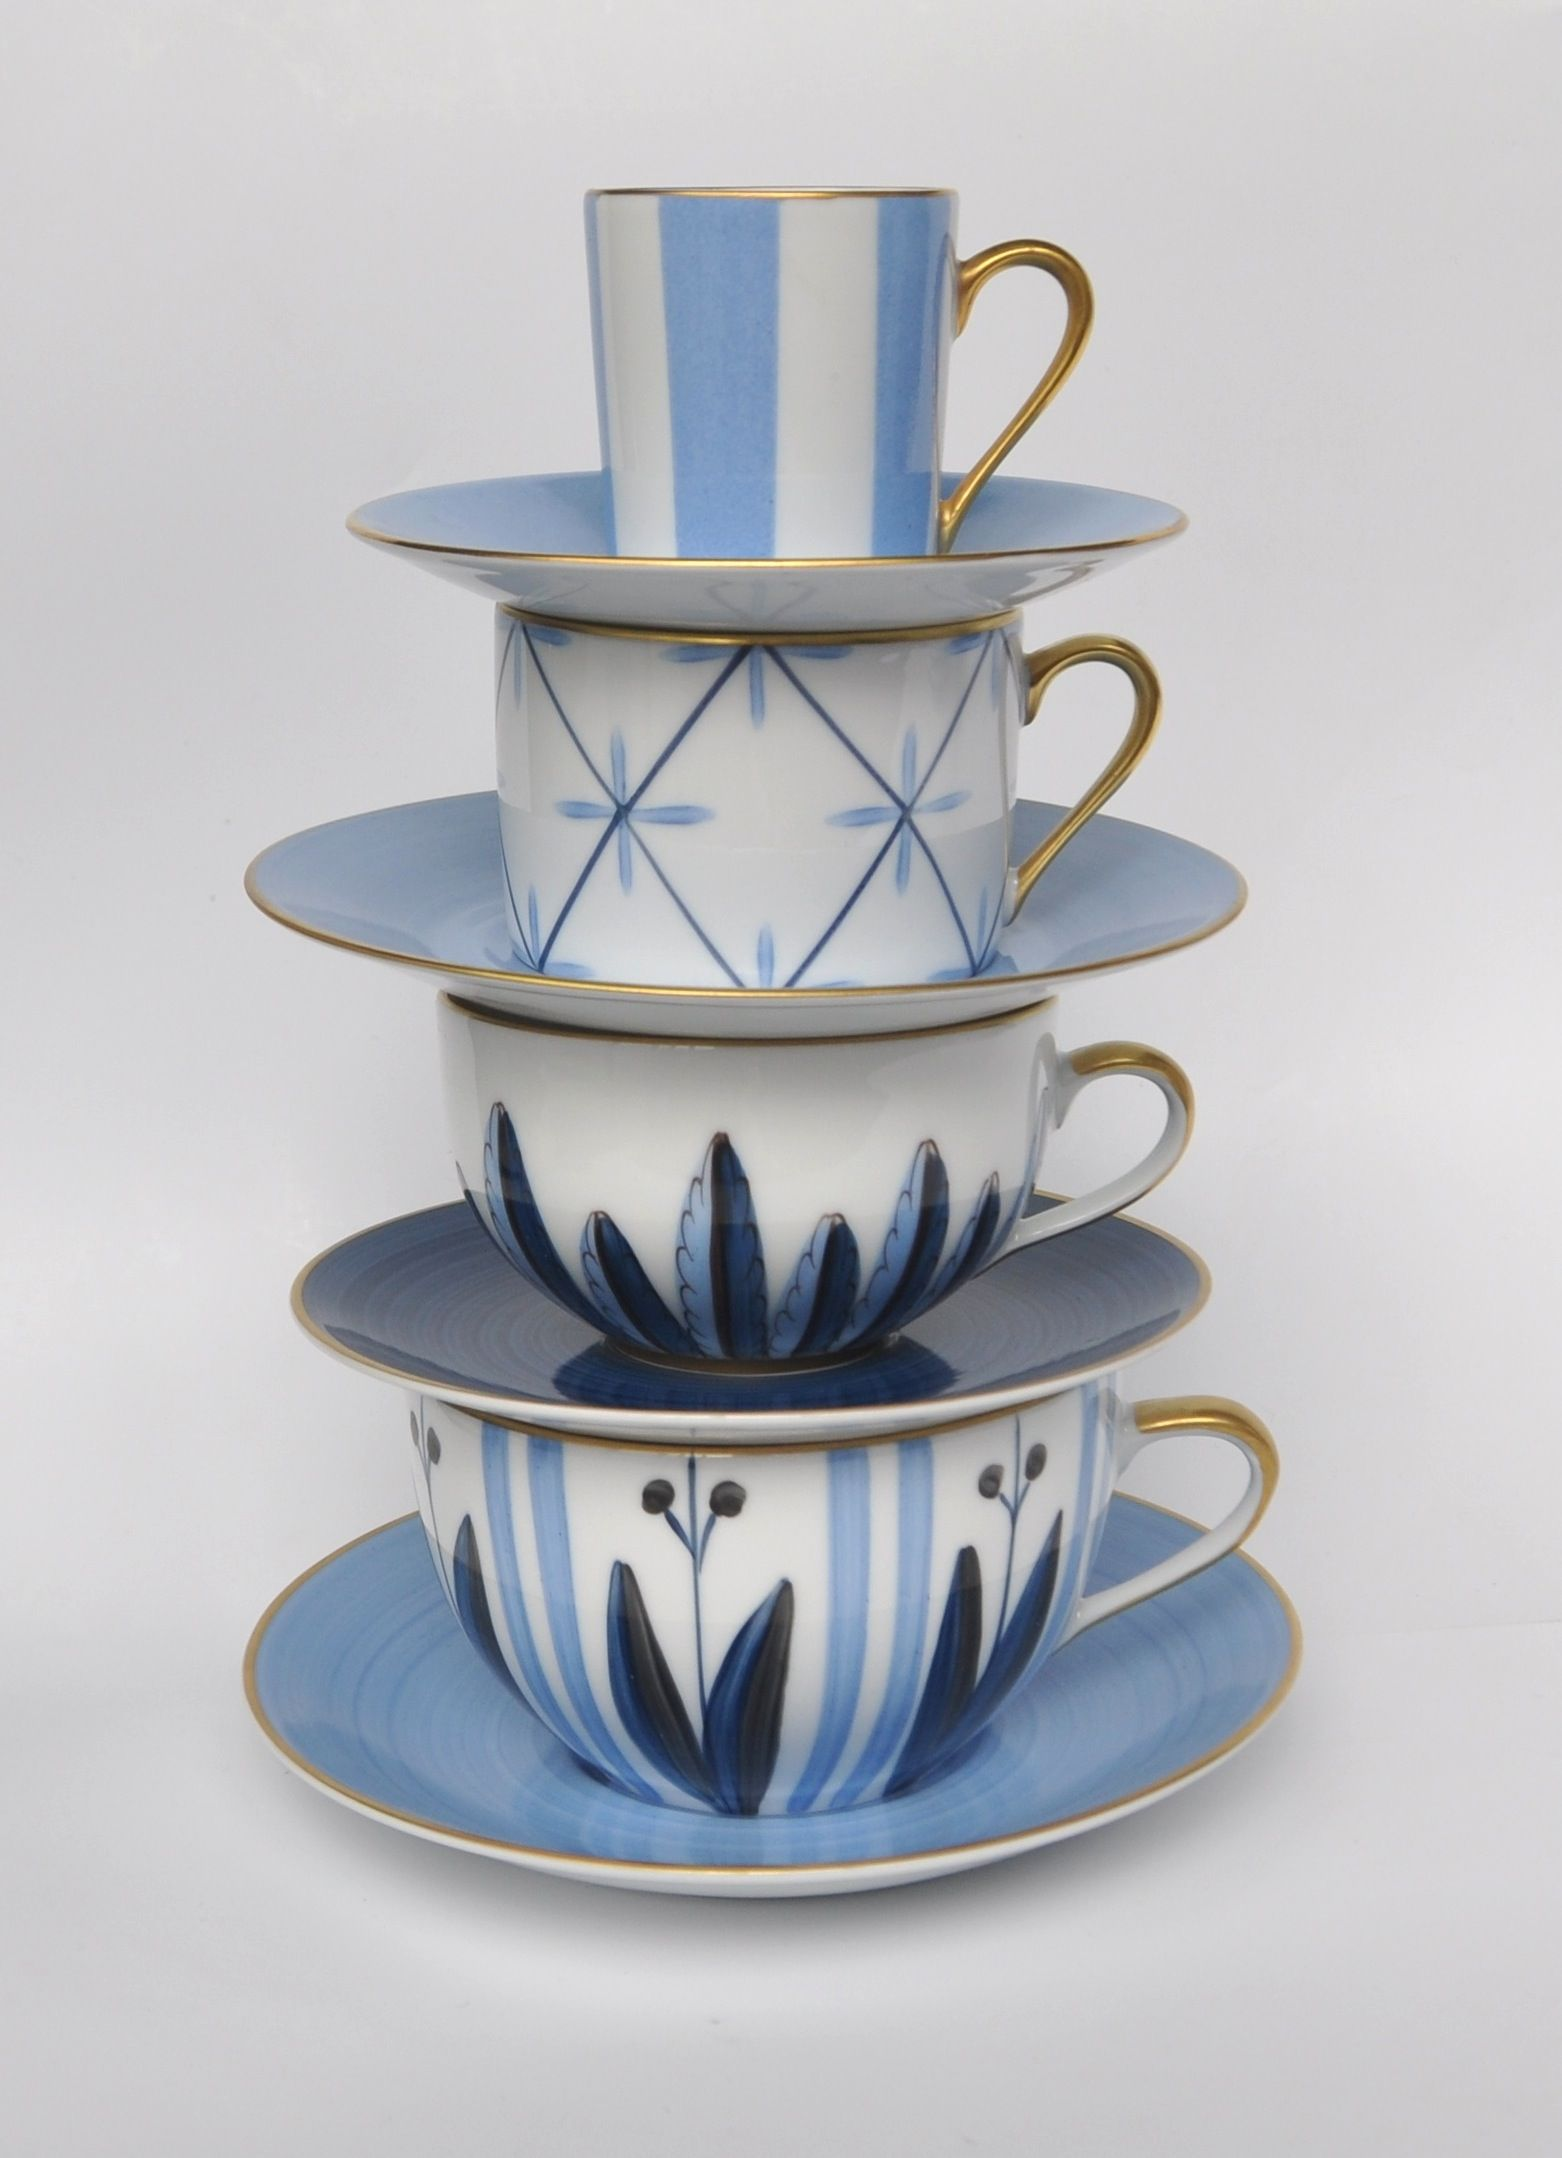 Blue Cups Tea And Coffee Cups Porcelain Of Limoges Hand Painted Marie Daage